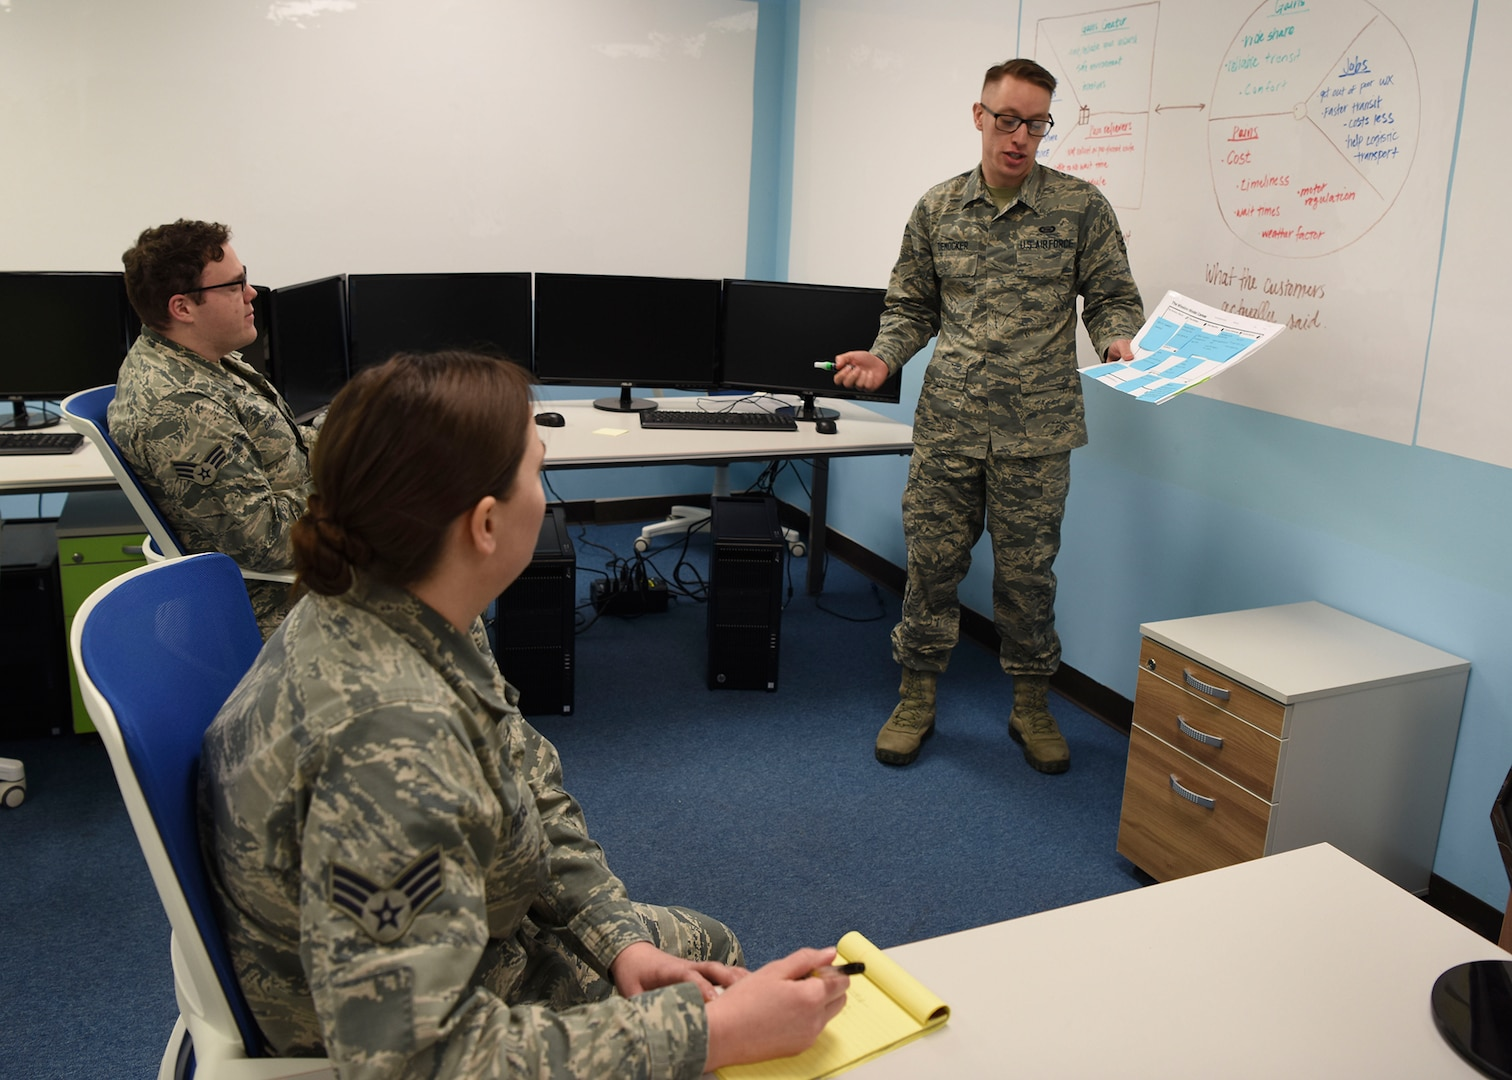 303rd Intelligence Squadron Innovates Internship Program